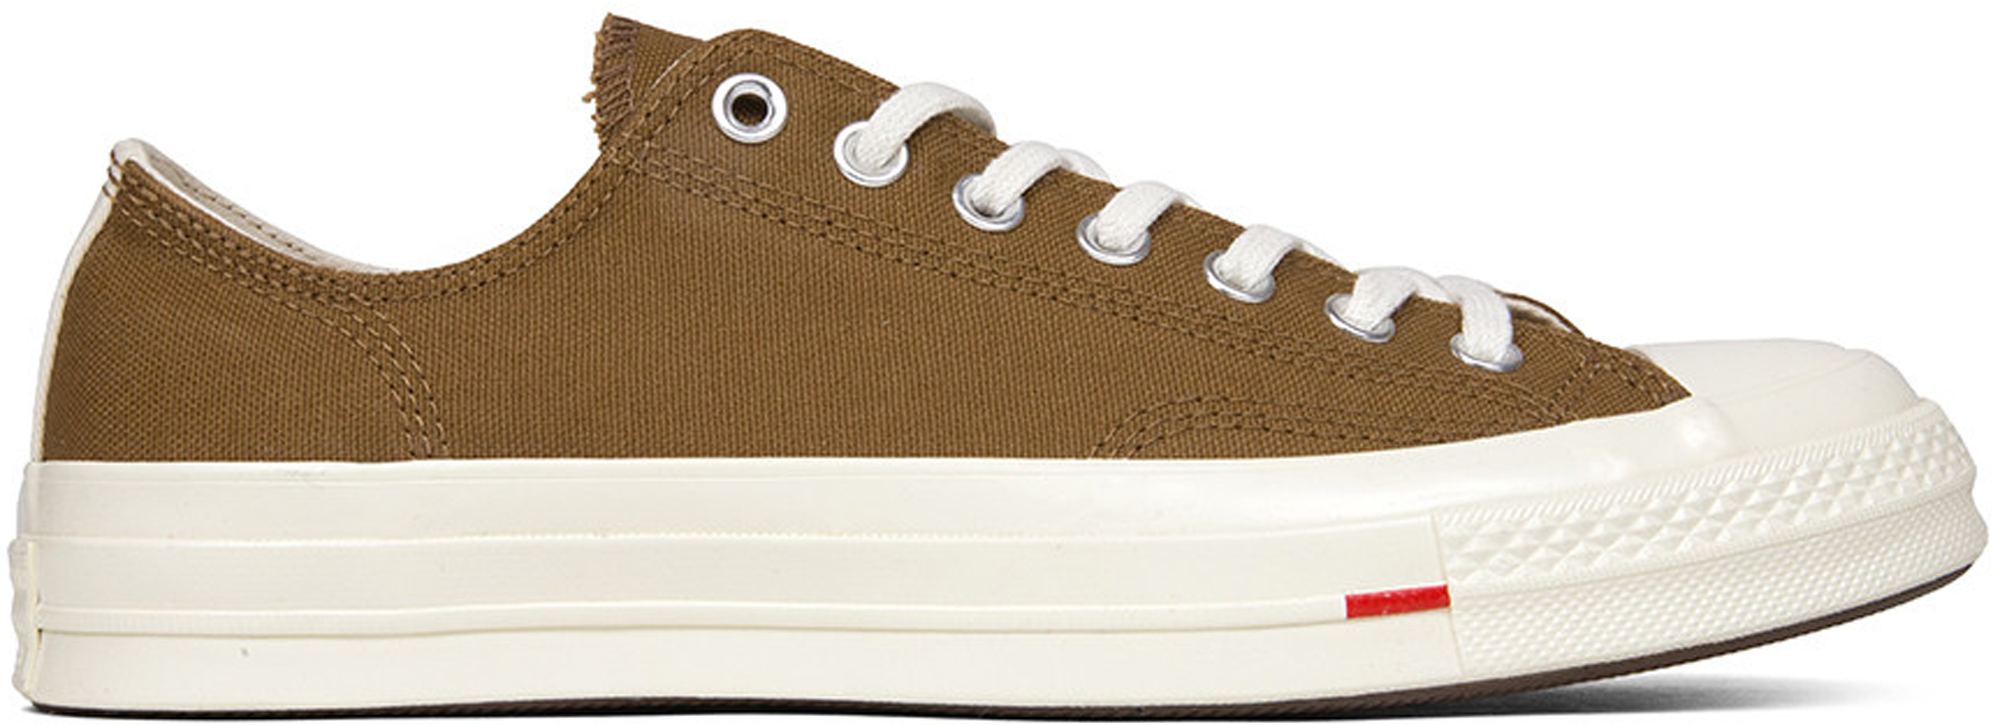 Converse Chuck Taylor All Star 70 Ox Carhartt Wip Brown by Stock X